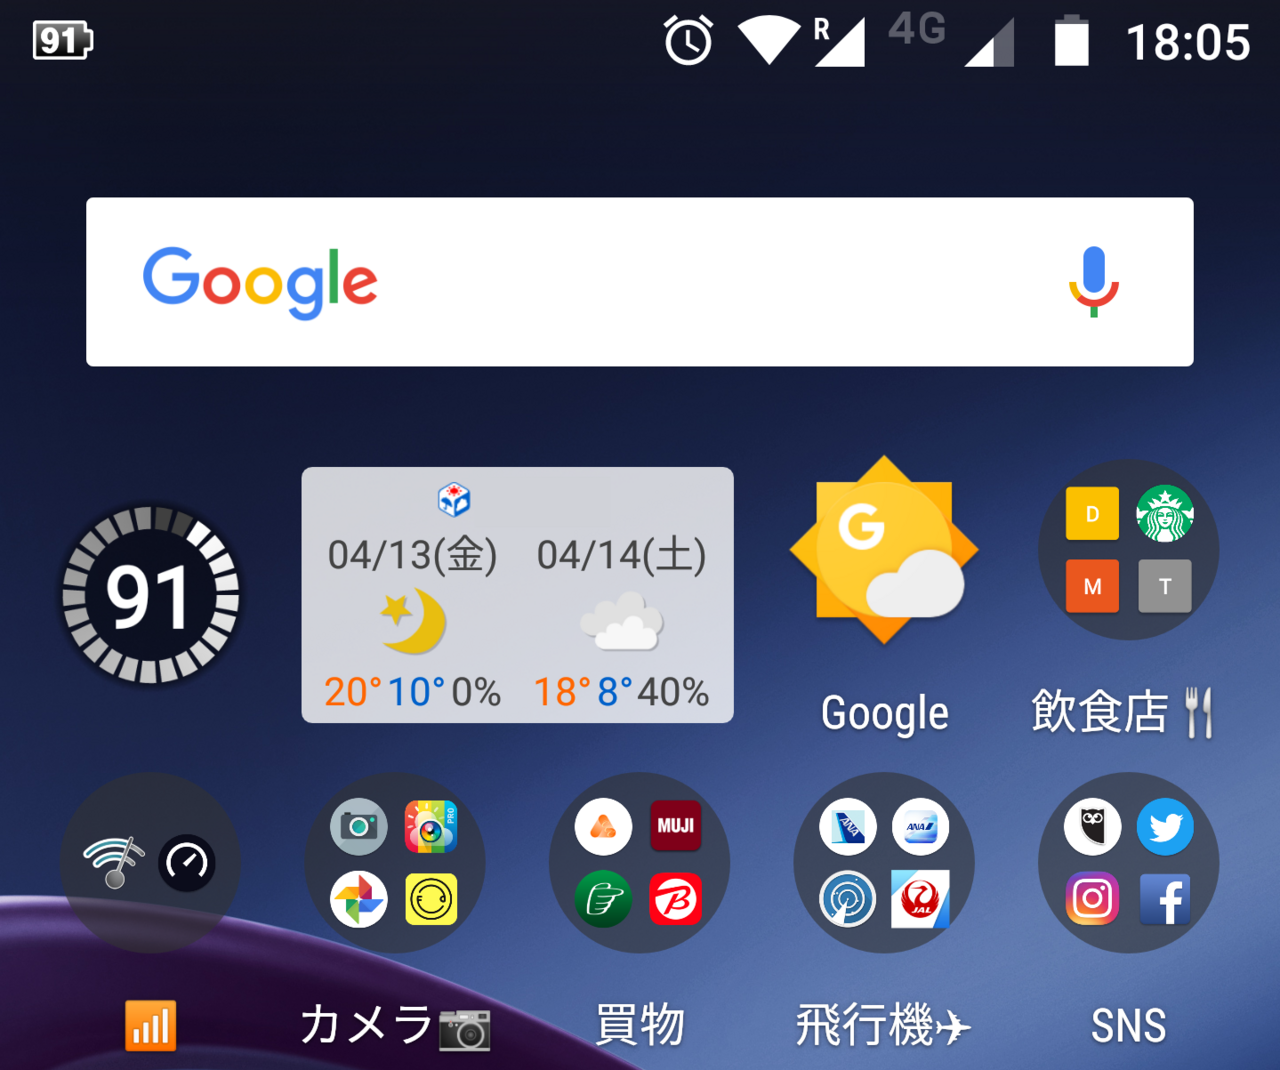 Android 8.0の画面の様子